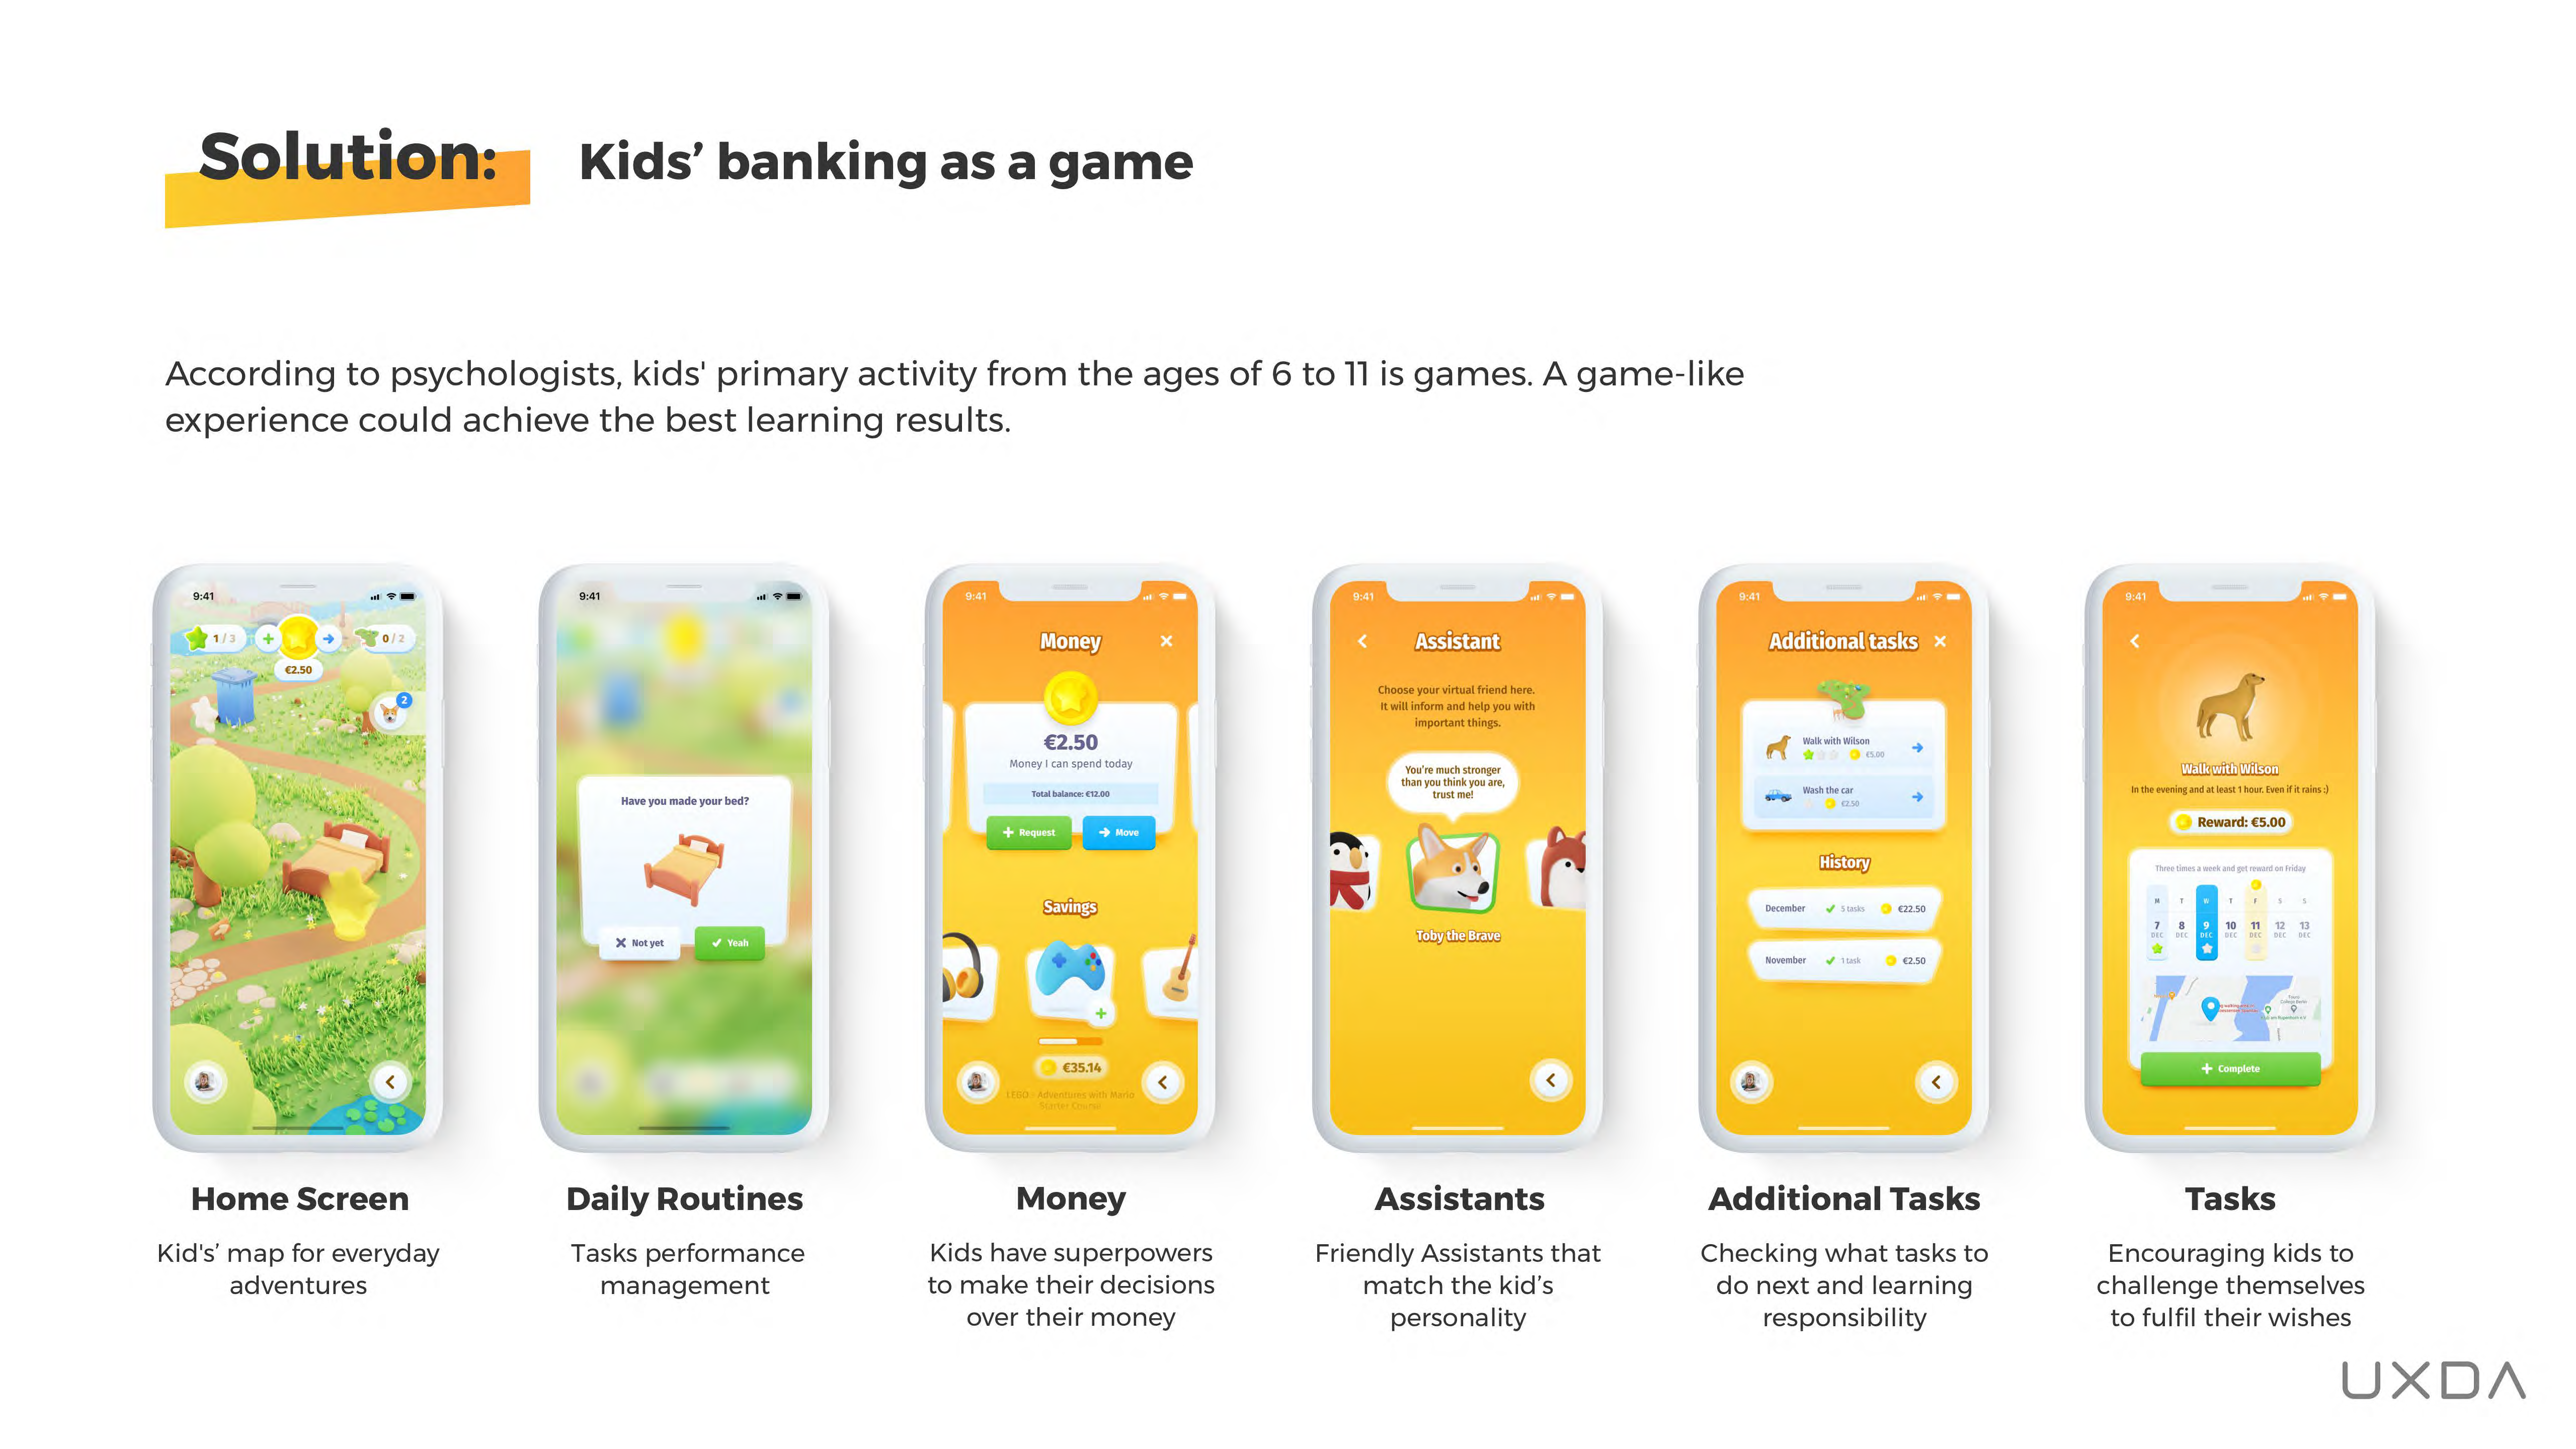 kids-banking-app-UX-design-concept-by-UXDA-3-1632140699.png